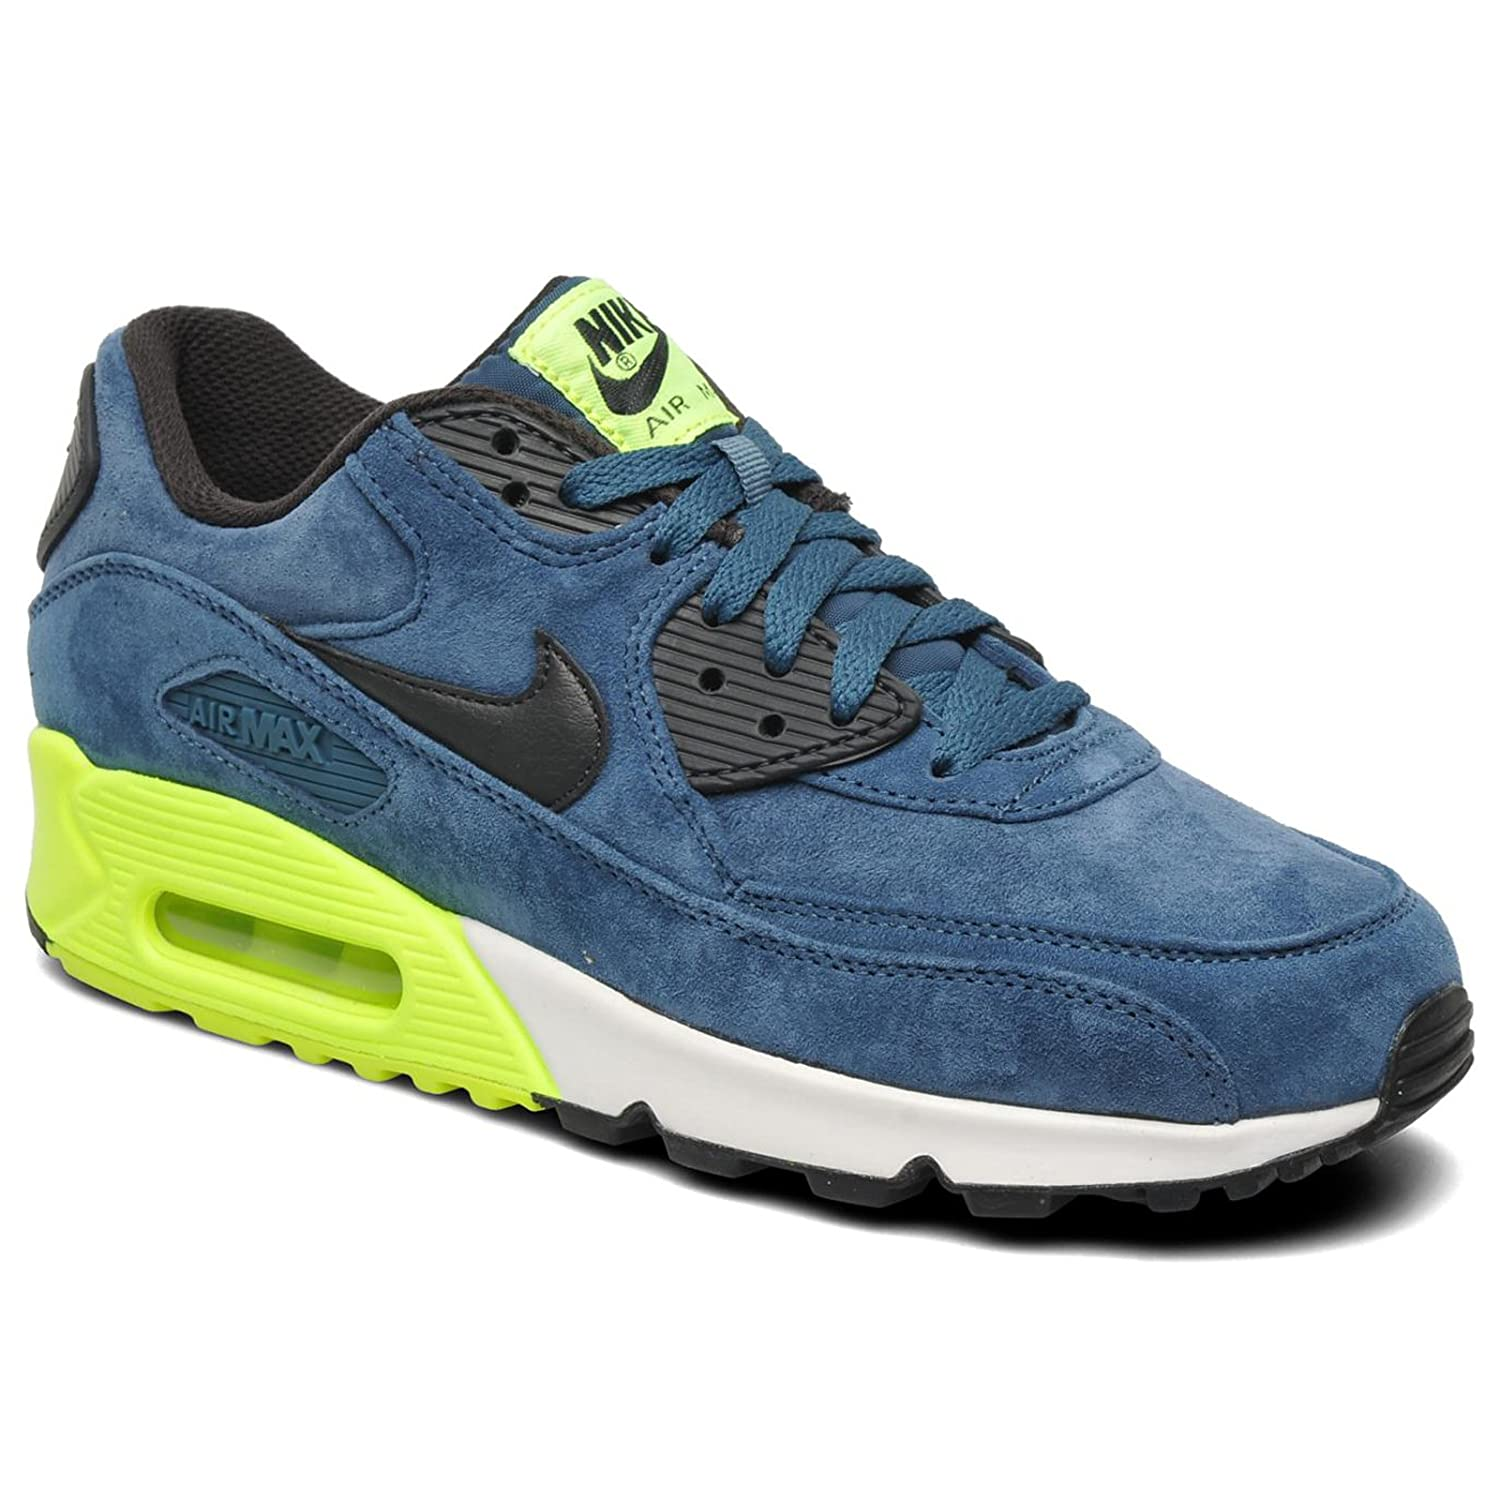 finest selection 4b671 1d5c0 Nike Air Max 90 Premium Suede - Night Factor Navy/Green Volt ...